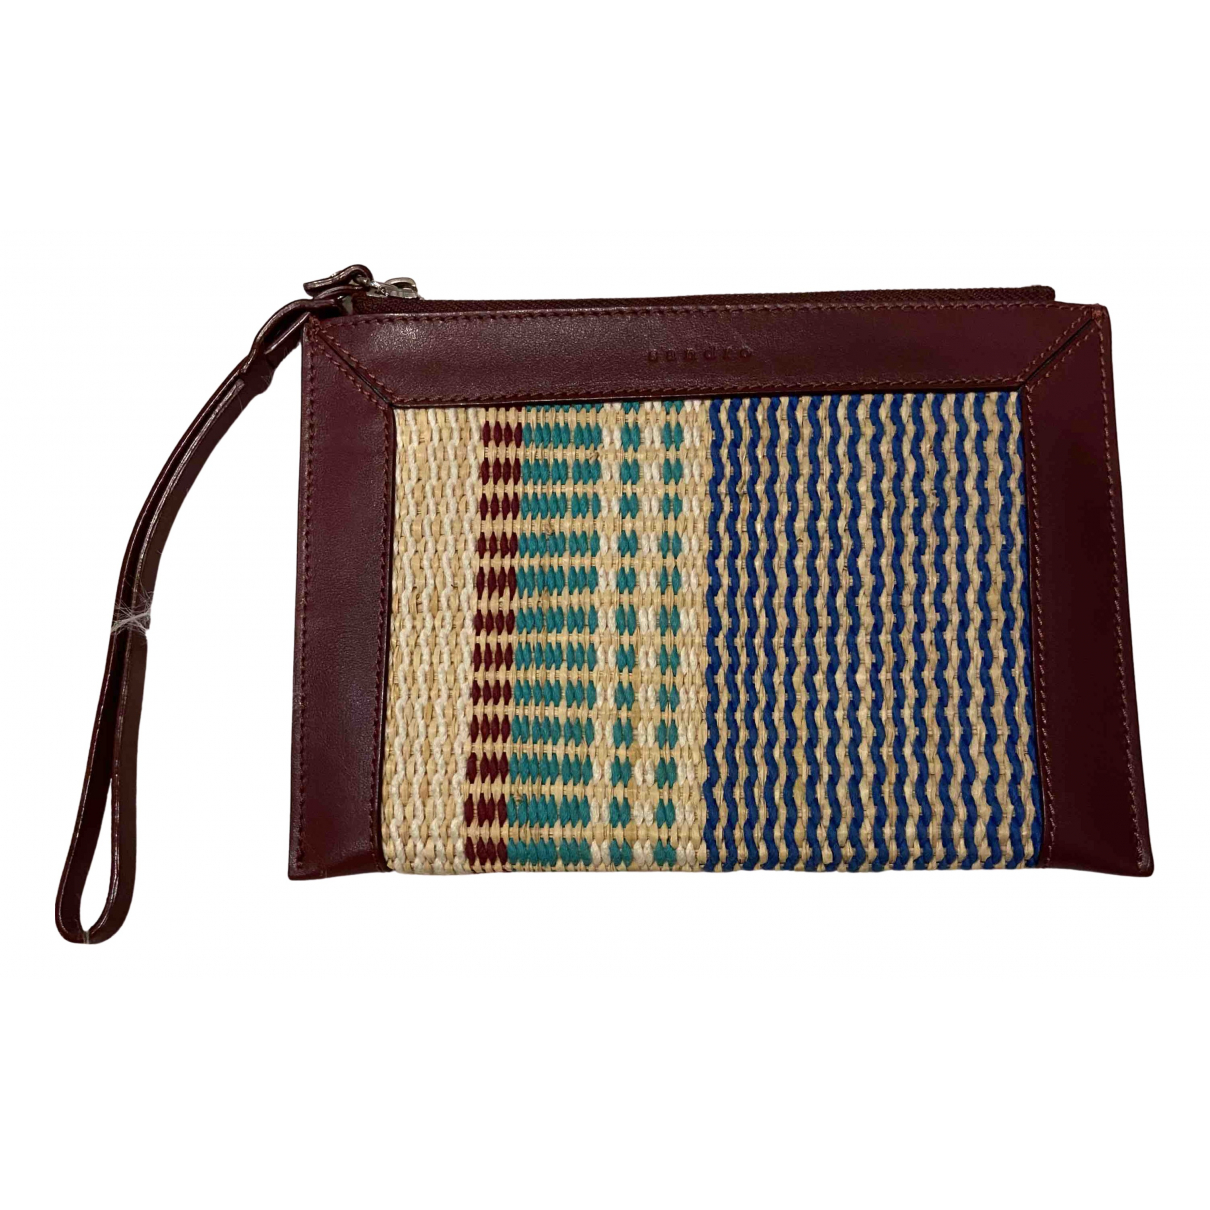 Sandro \N Clutch in  Bordeauxrot Leder